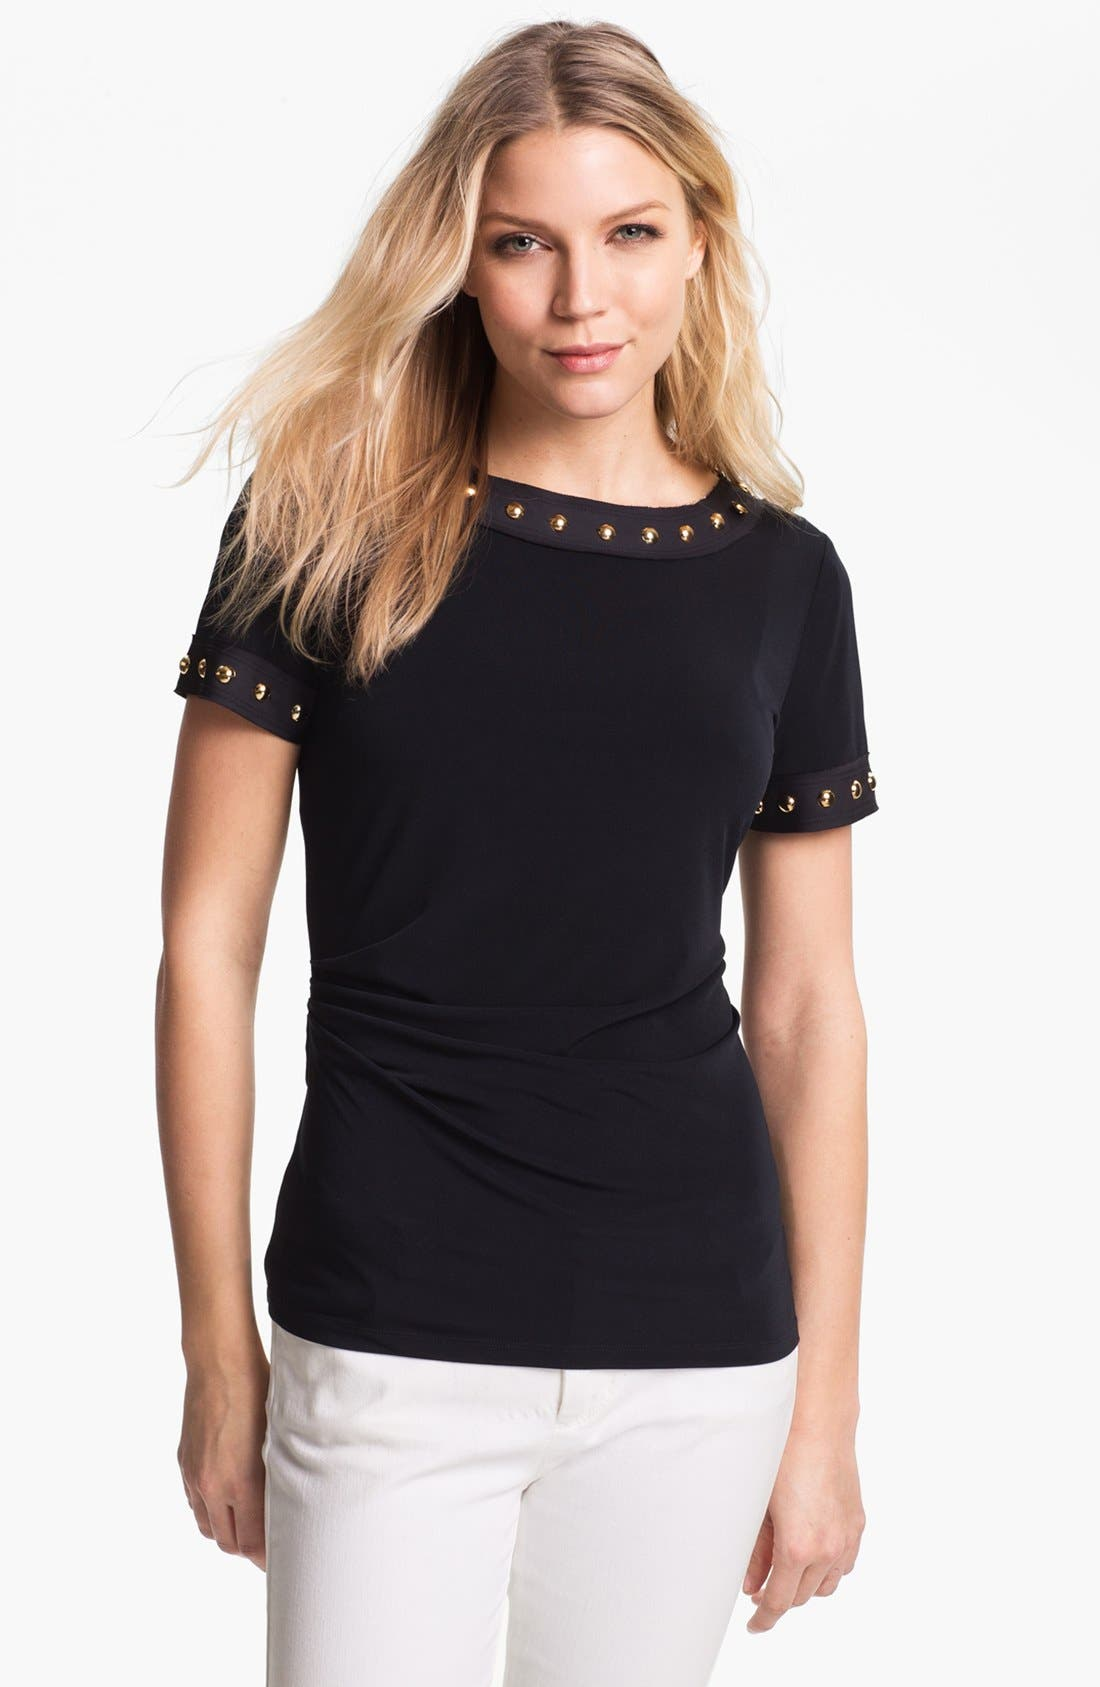 Alternate Image 1 Selected - MICHAEL Michael Kors Studded Matte Jersey Top (Petite)